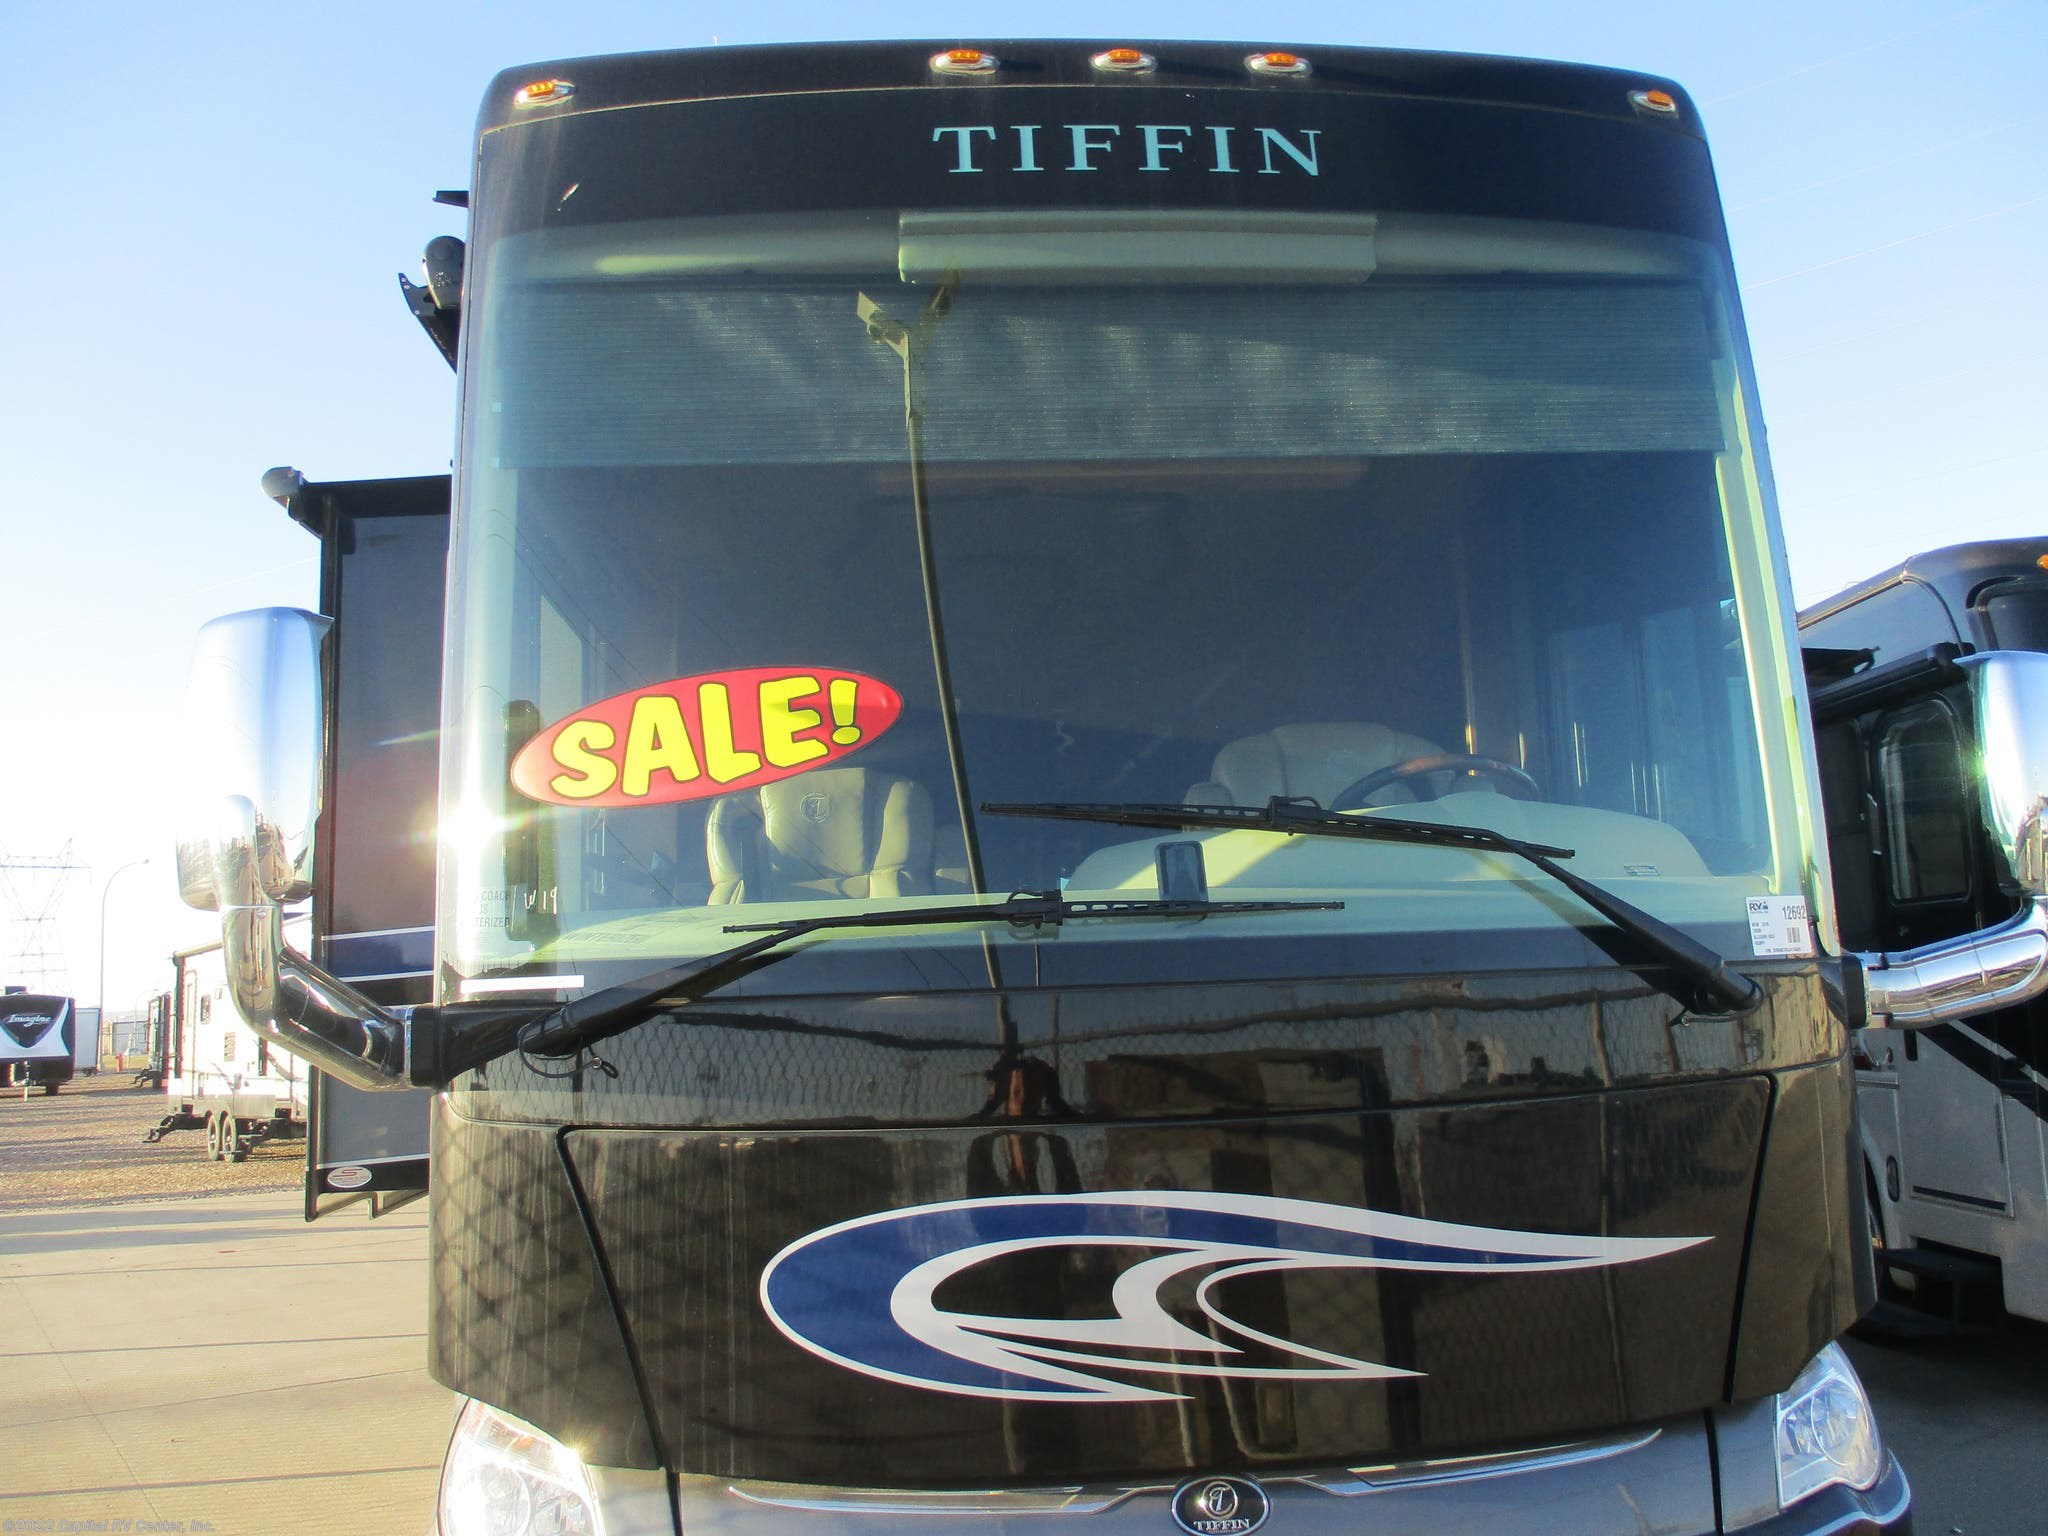 2018 Tiffin RV Allegro Bus 45 OPP for Sale in Bismarck, ND 58501 | 2612692